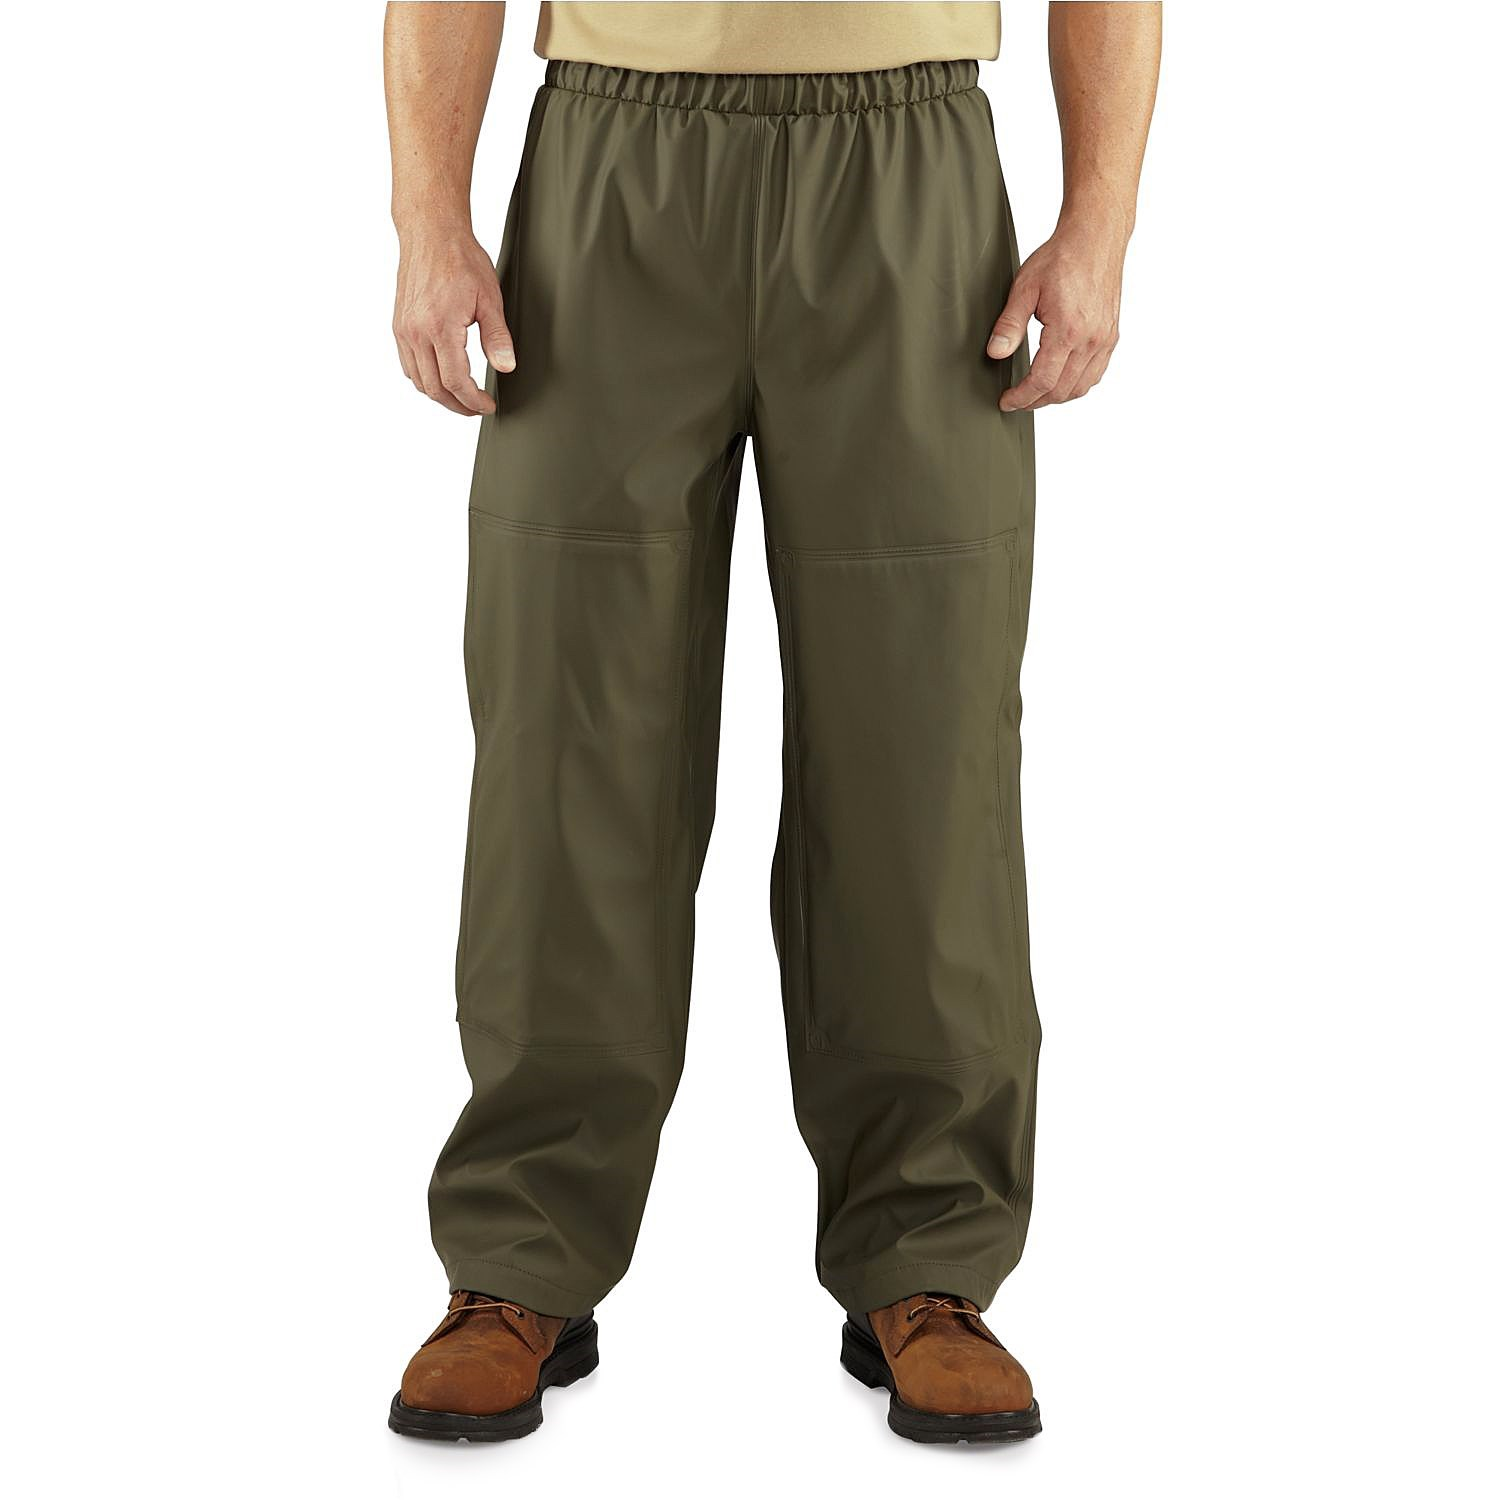 Mens Tall Linen Pants ($ - $): 30 of items - Shop Mens Tall Linen Pants from ALL your favorite stores & find HUGE SAVINGS up to 80% off Mens Tall Linen Pants, including GREAT DEALS like Men's Big & Tall Oak Hill Linen-Blend Pleated Suit Pants ($).